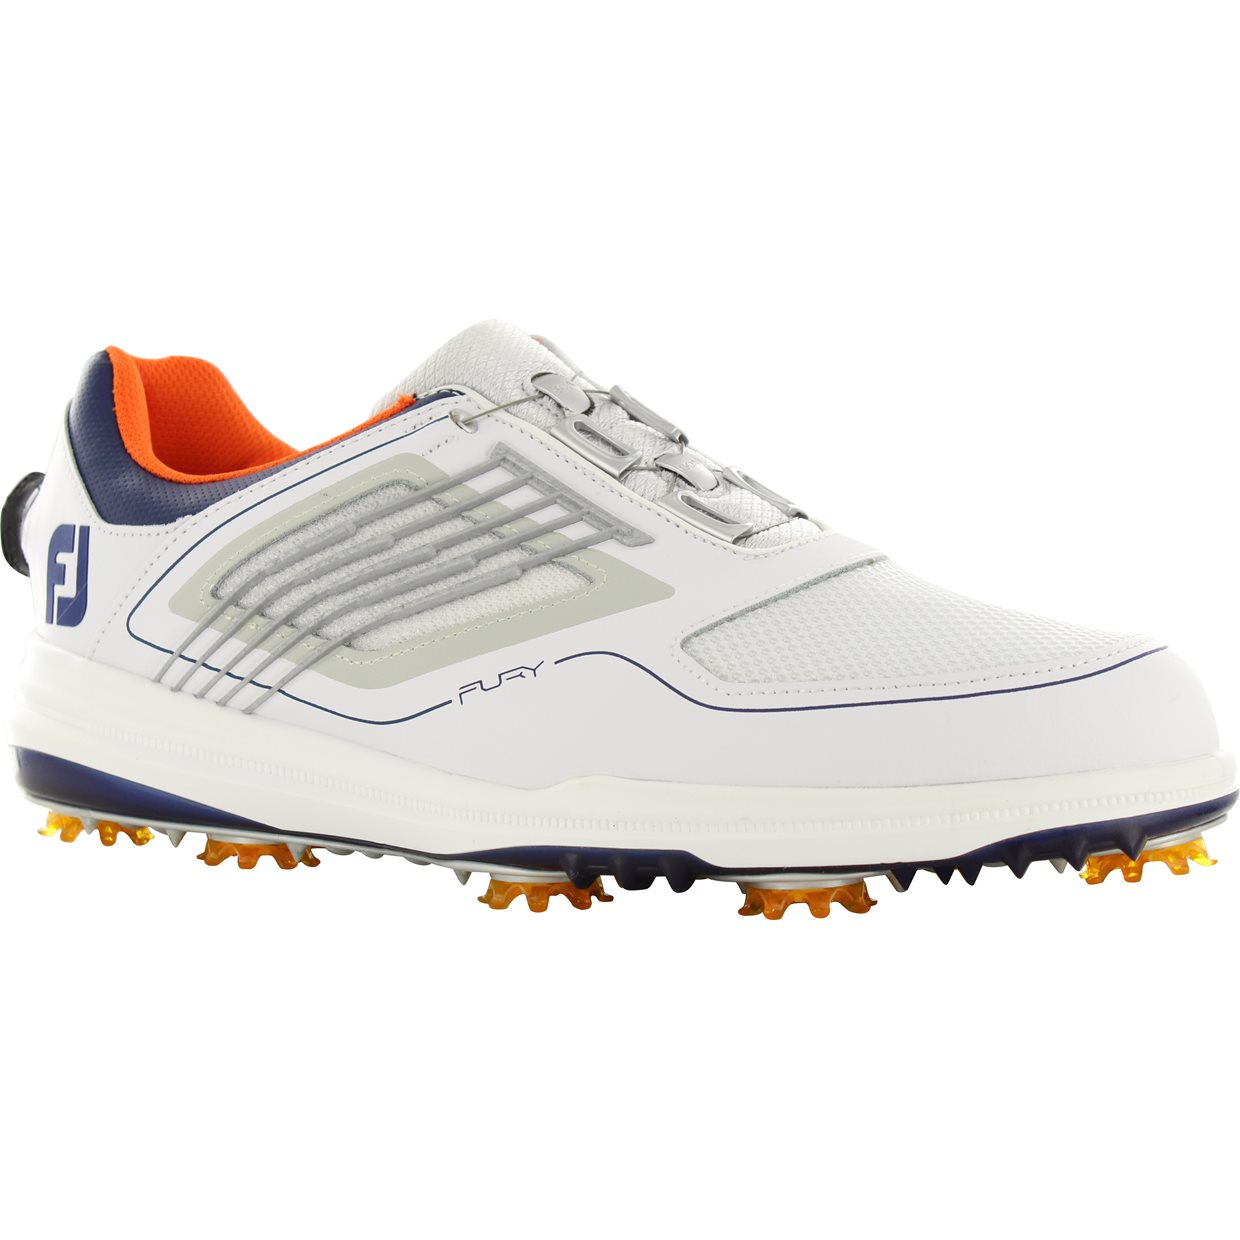 d90ddf15db FootJoy FJ Fury BOA Golf Shoes at GlobalGolf.com